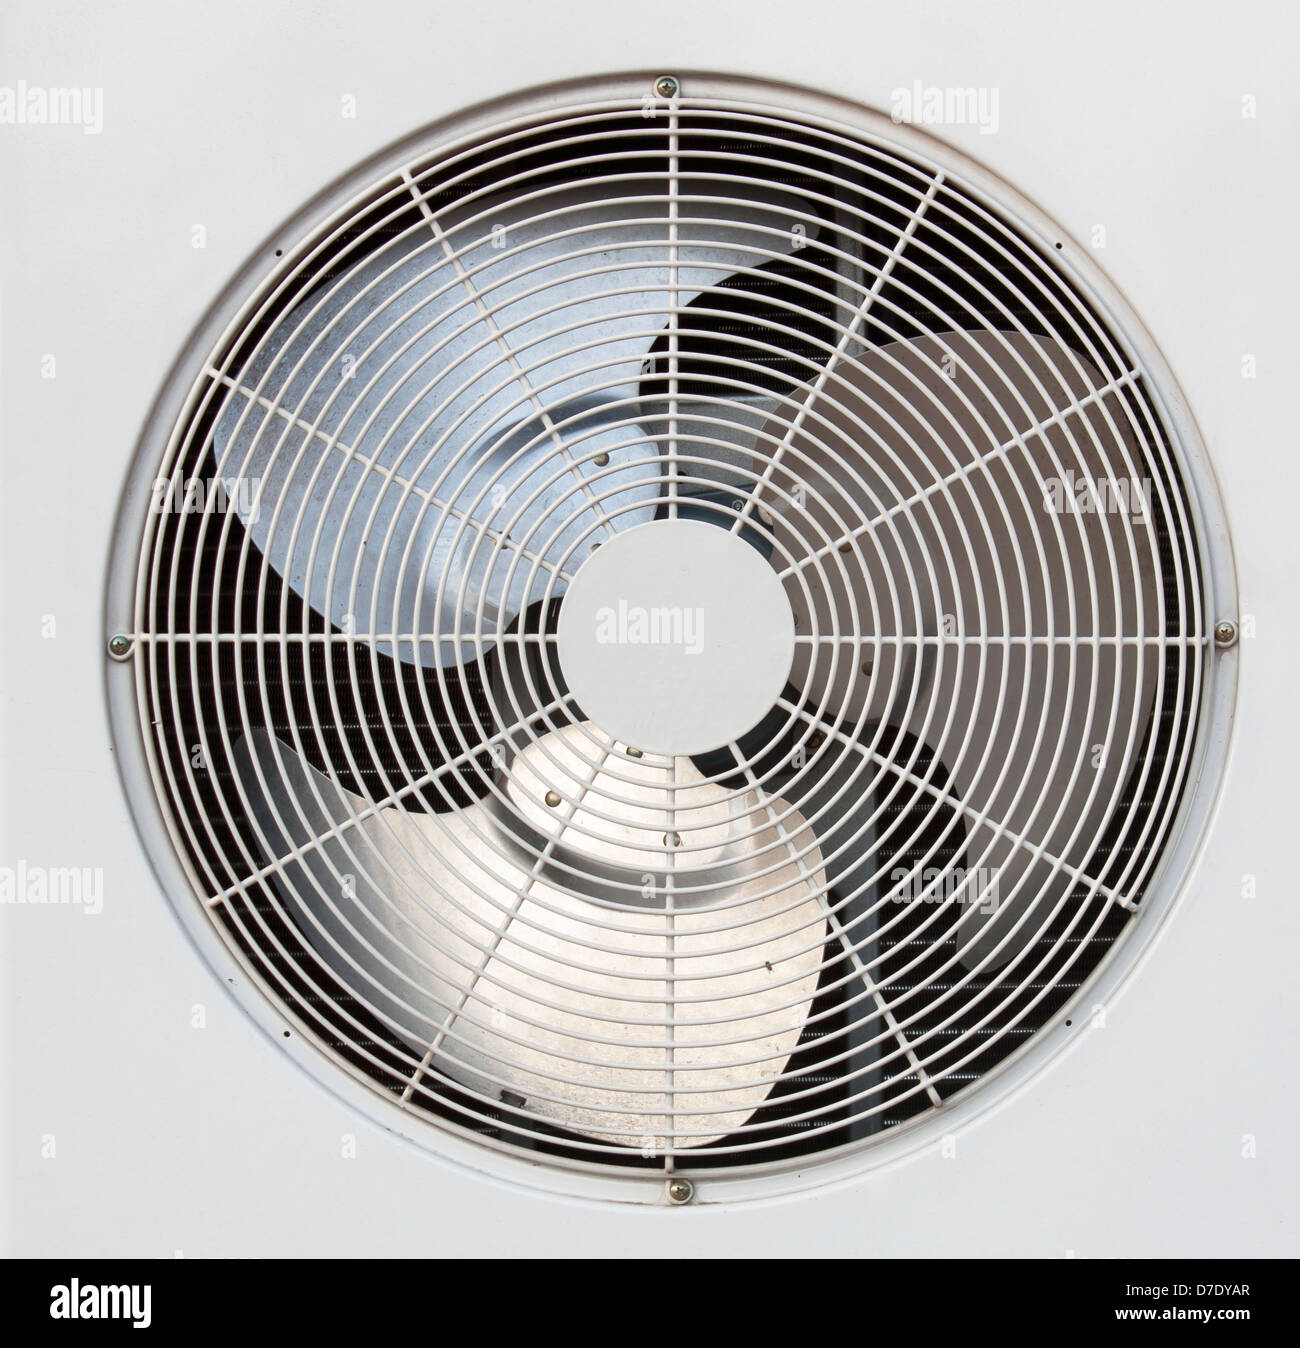 Fan Vent Stock Photos & Fan Vent Stock Images